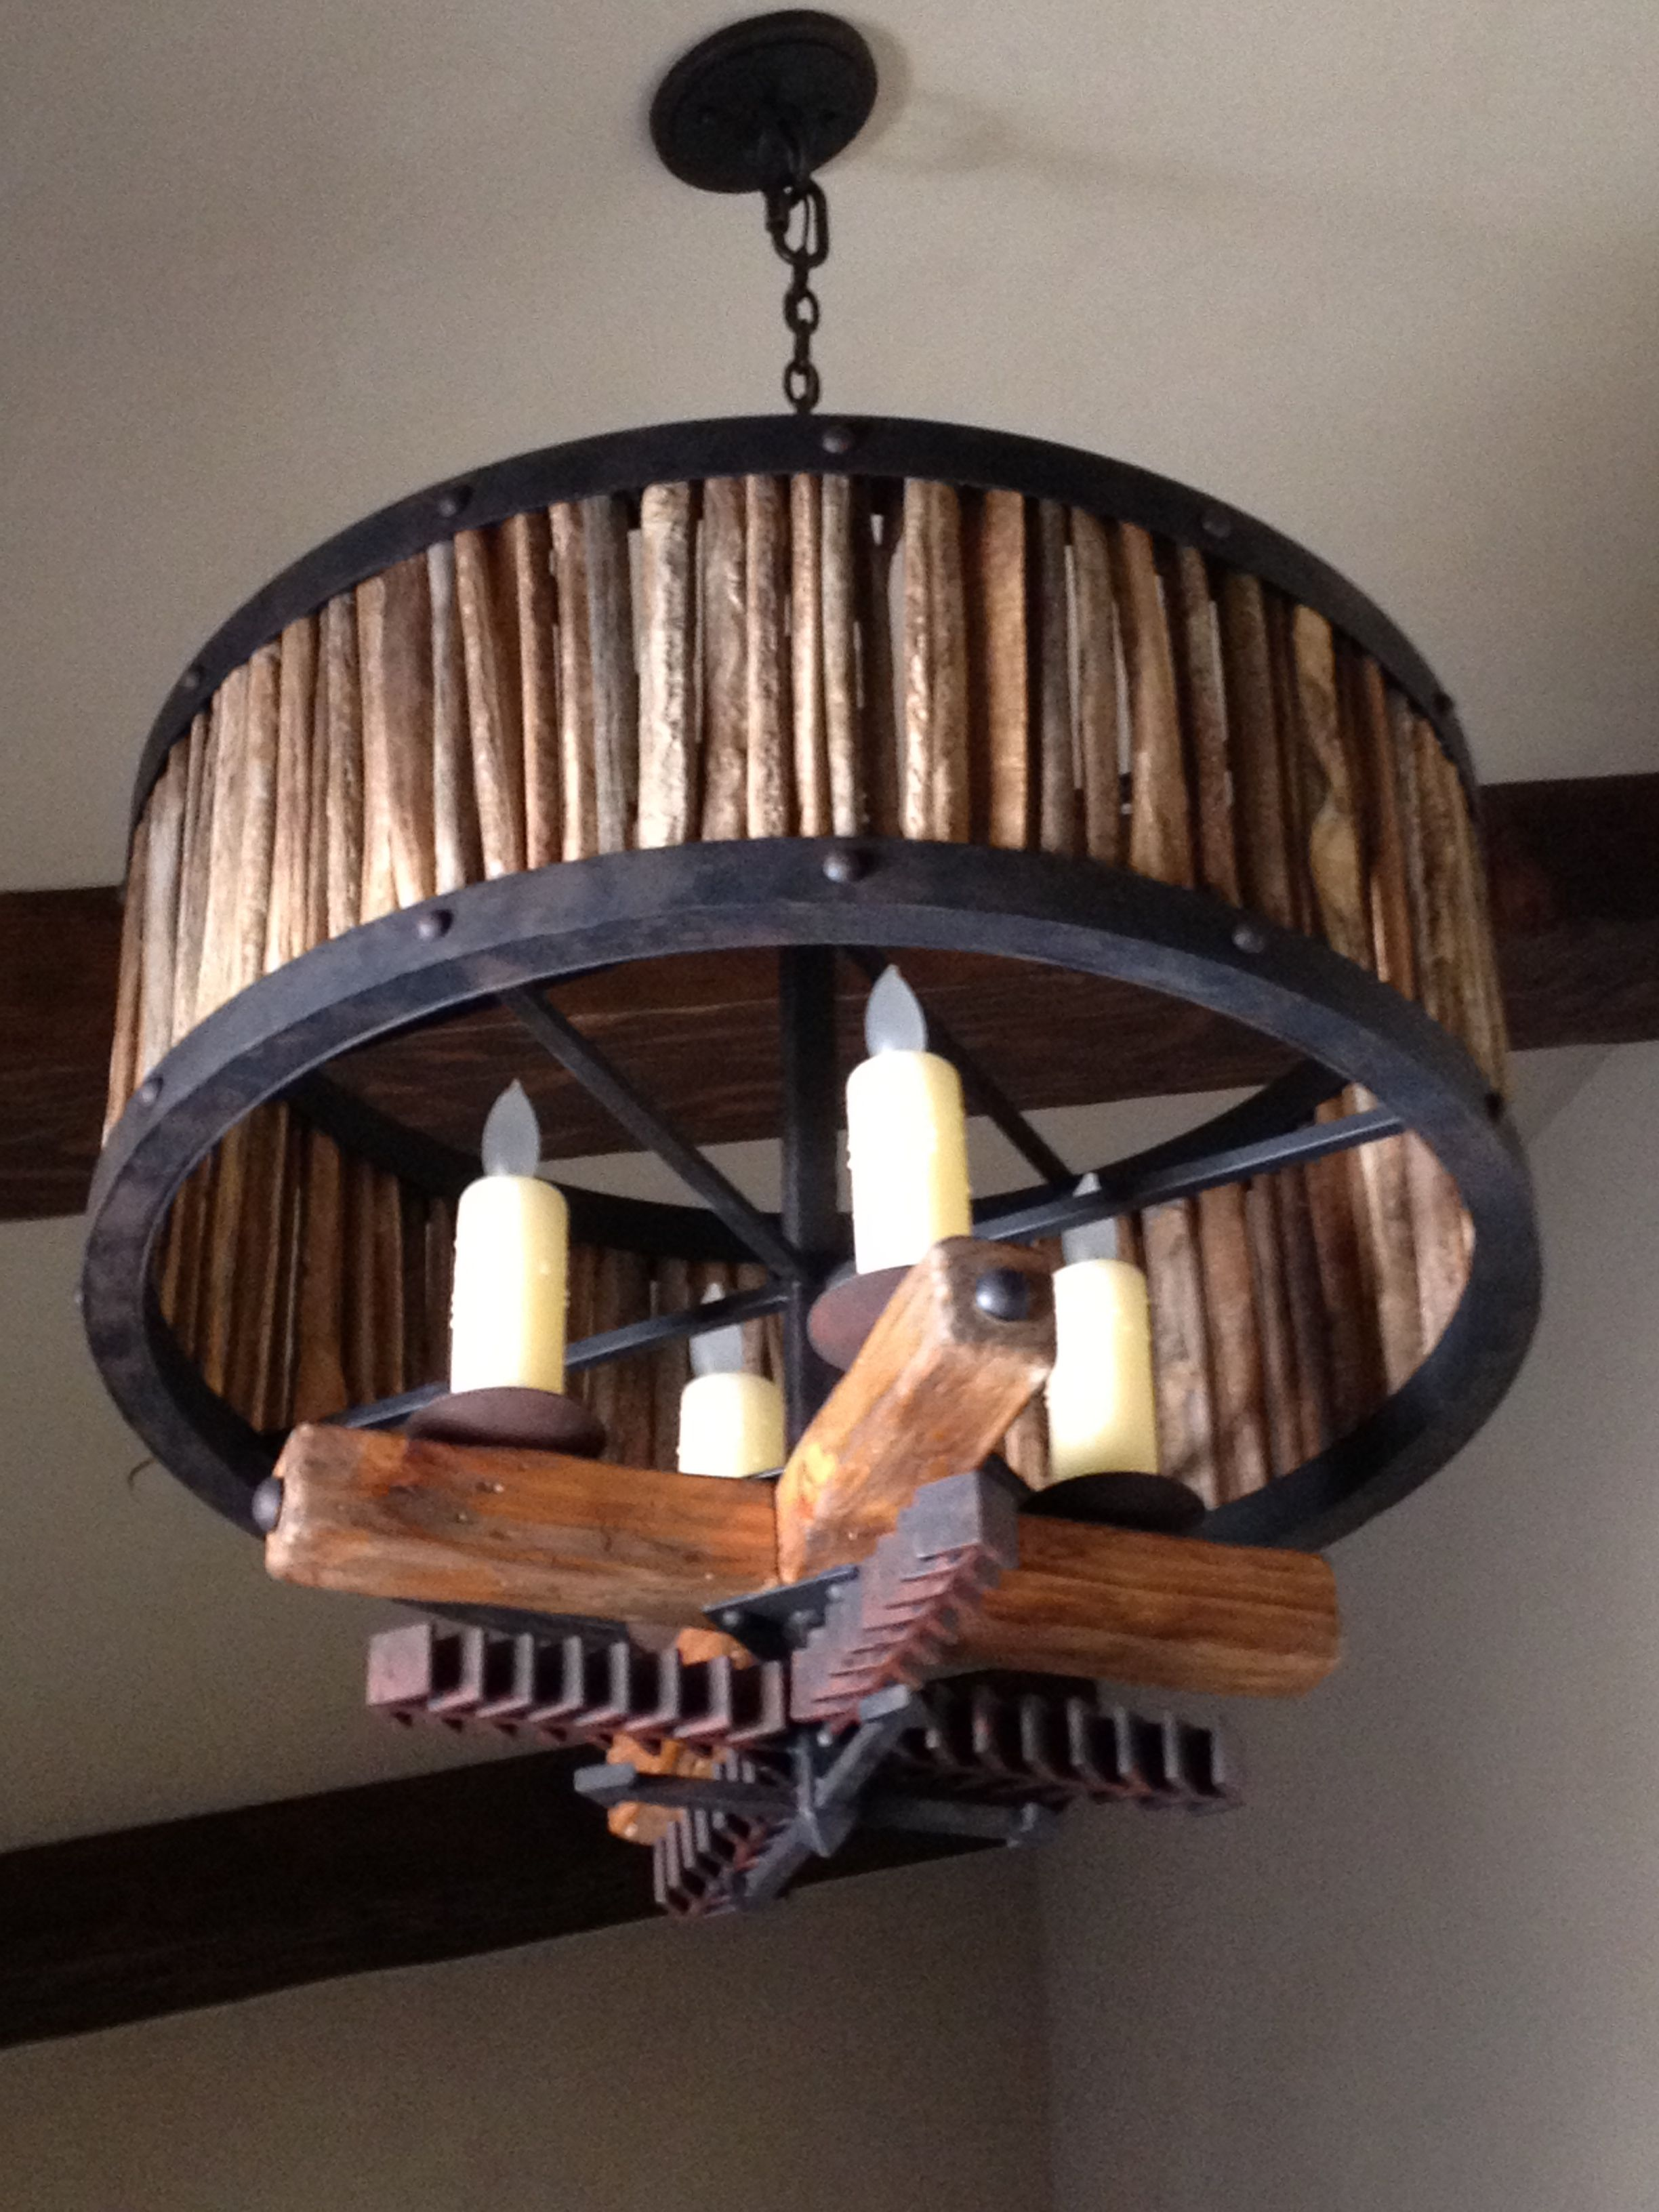 Cactus ribs iron and wood chandelier lighting designed by cactus ribs iron and wood chandelier arubaitofo Images